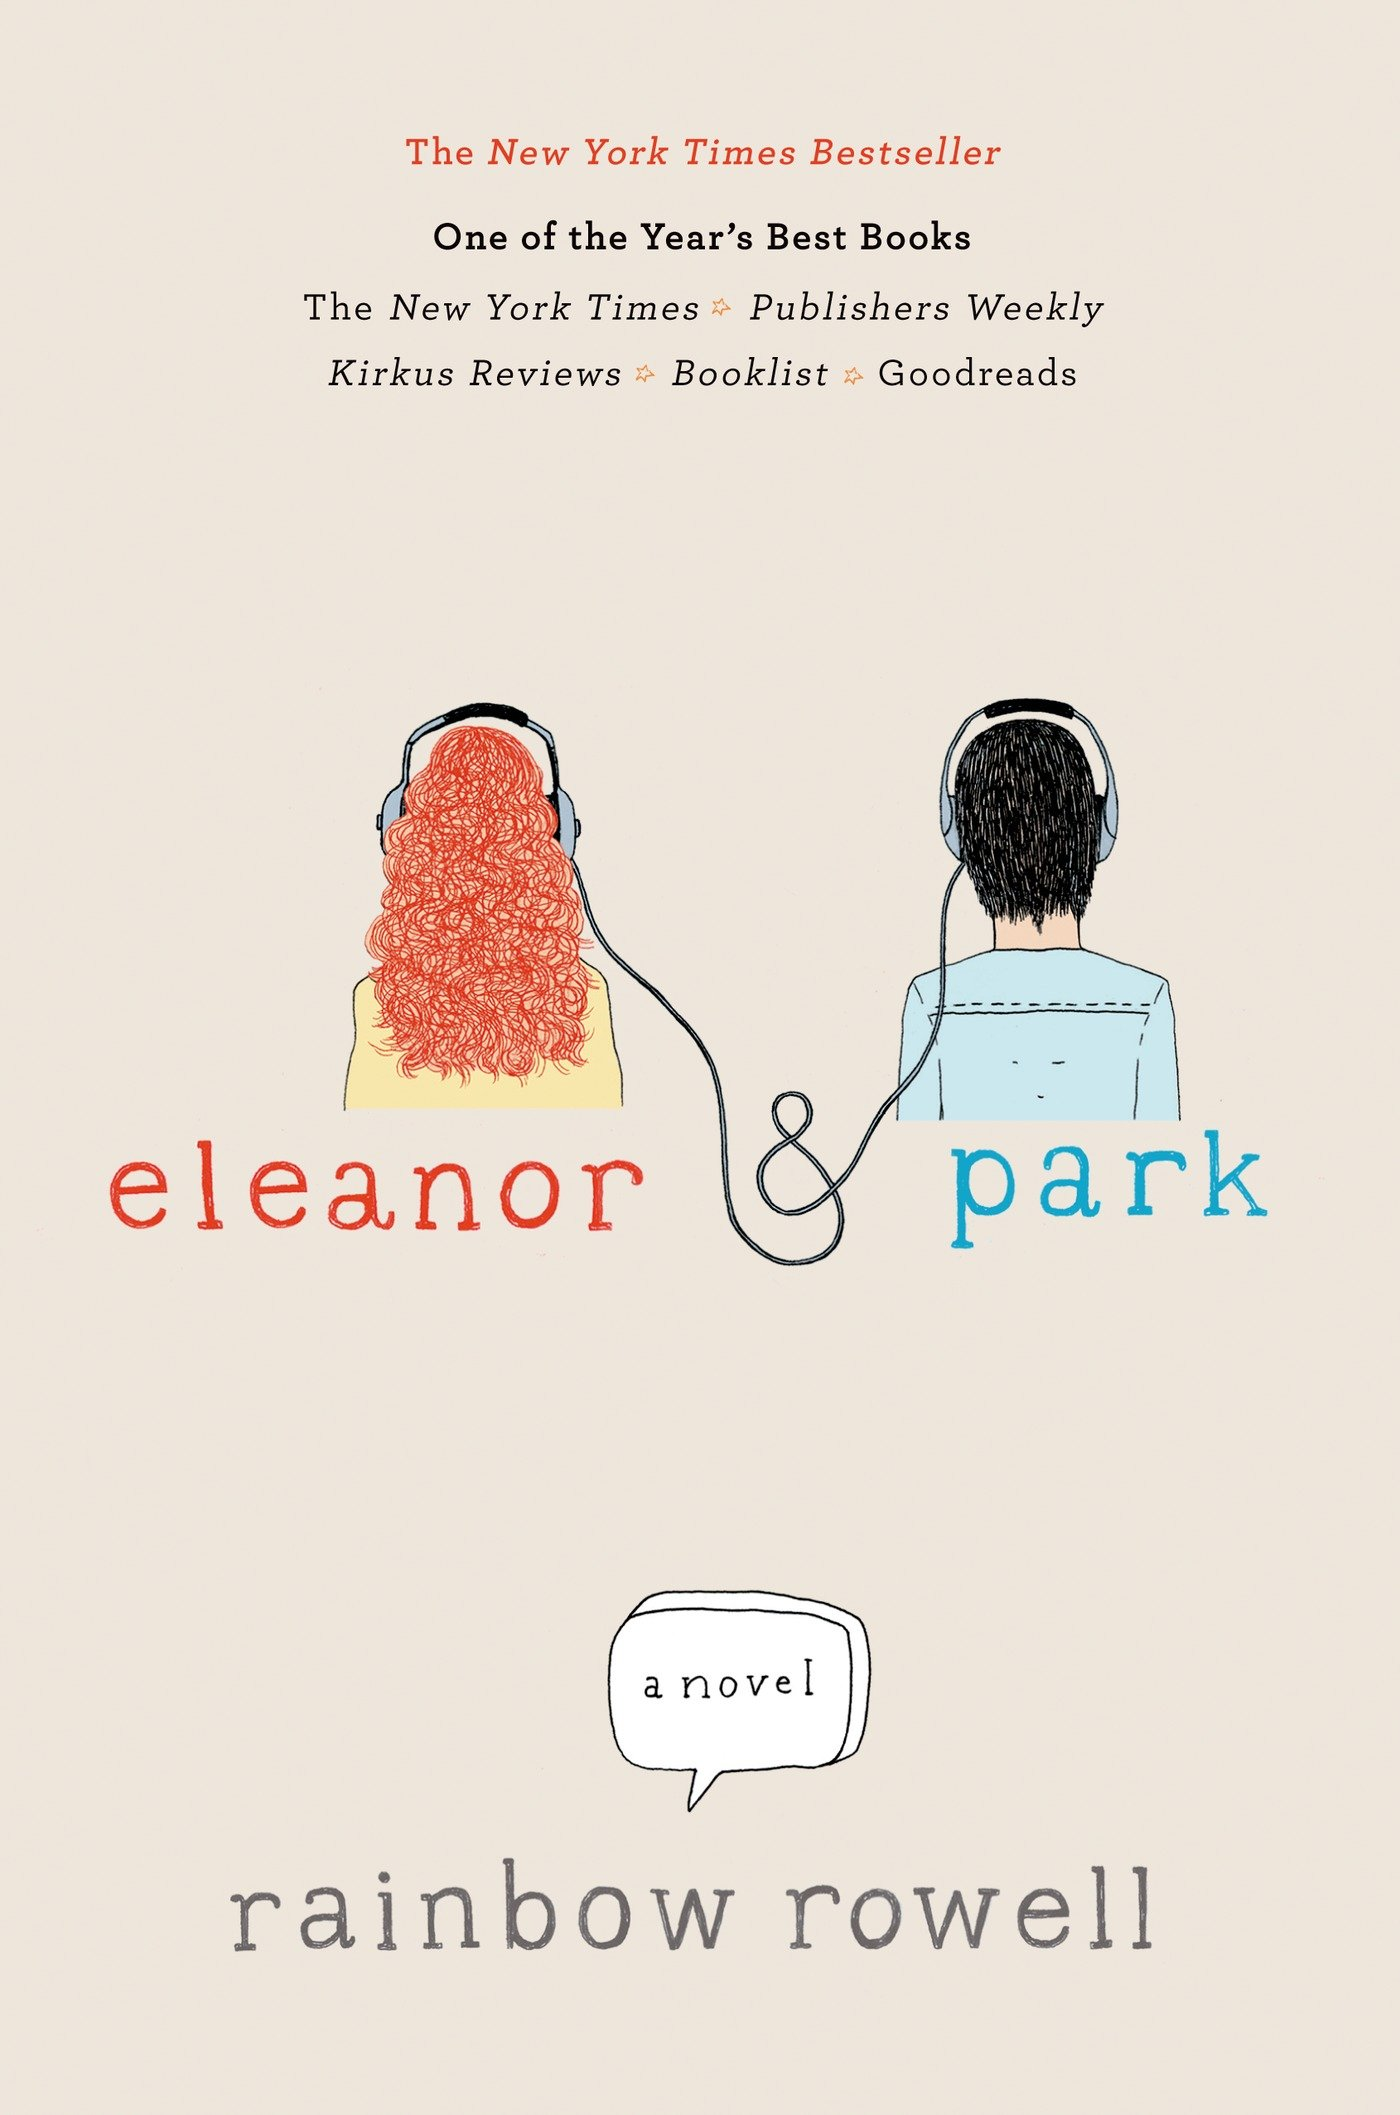 eleanor y park, cinderella tag, book tag,